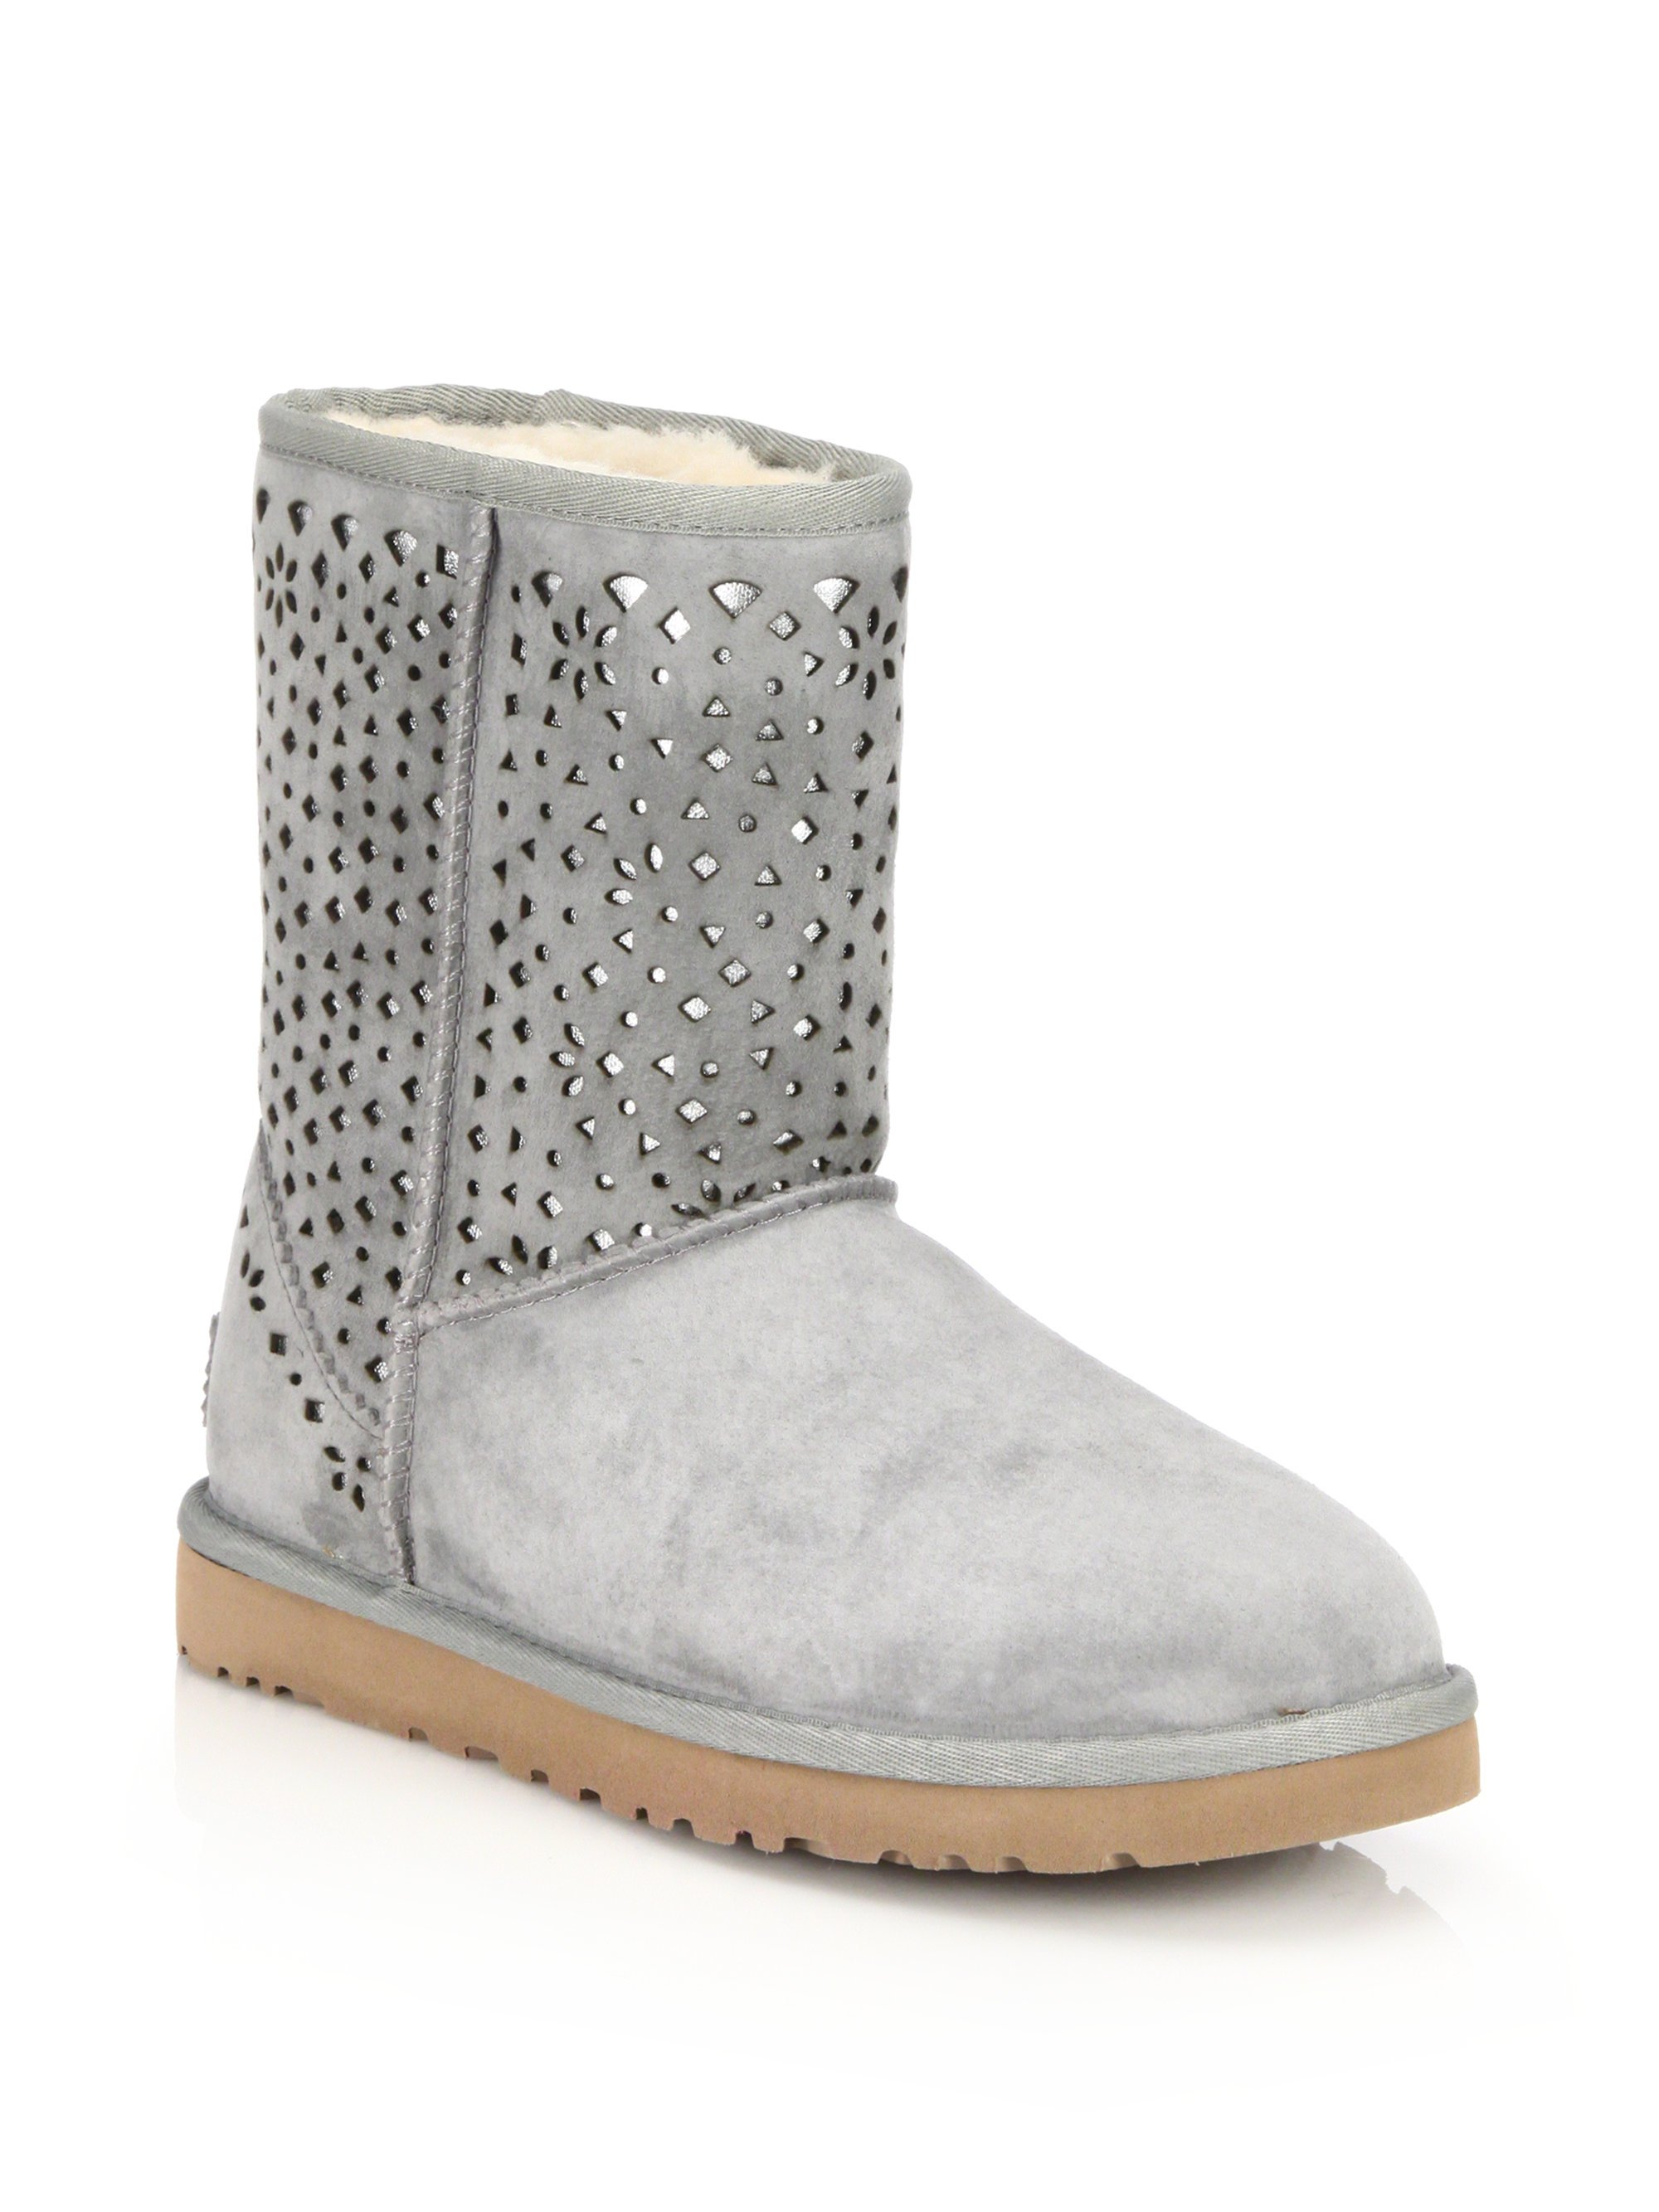 9c93ead4074 UGG Gray Classic Short Flora Perforated Boots